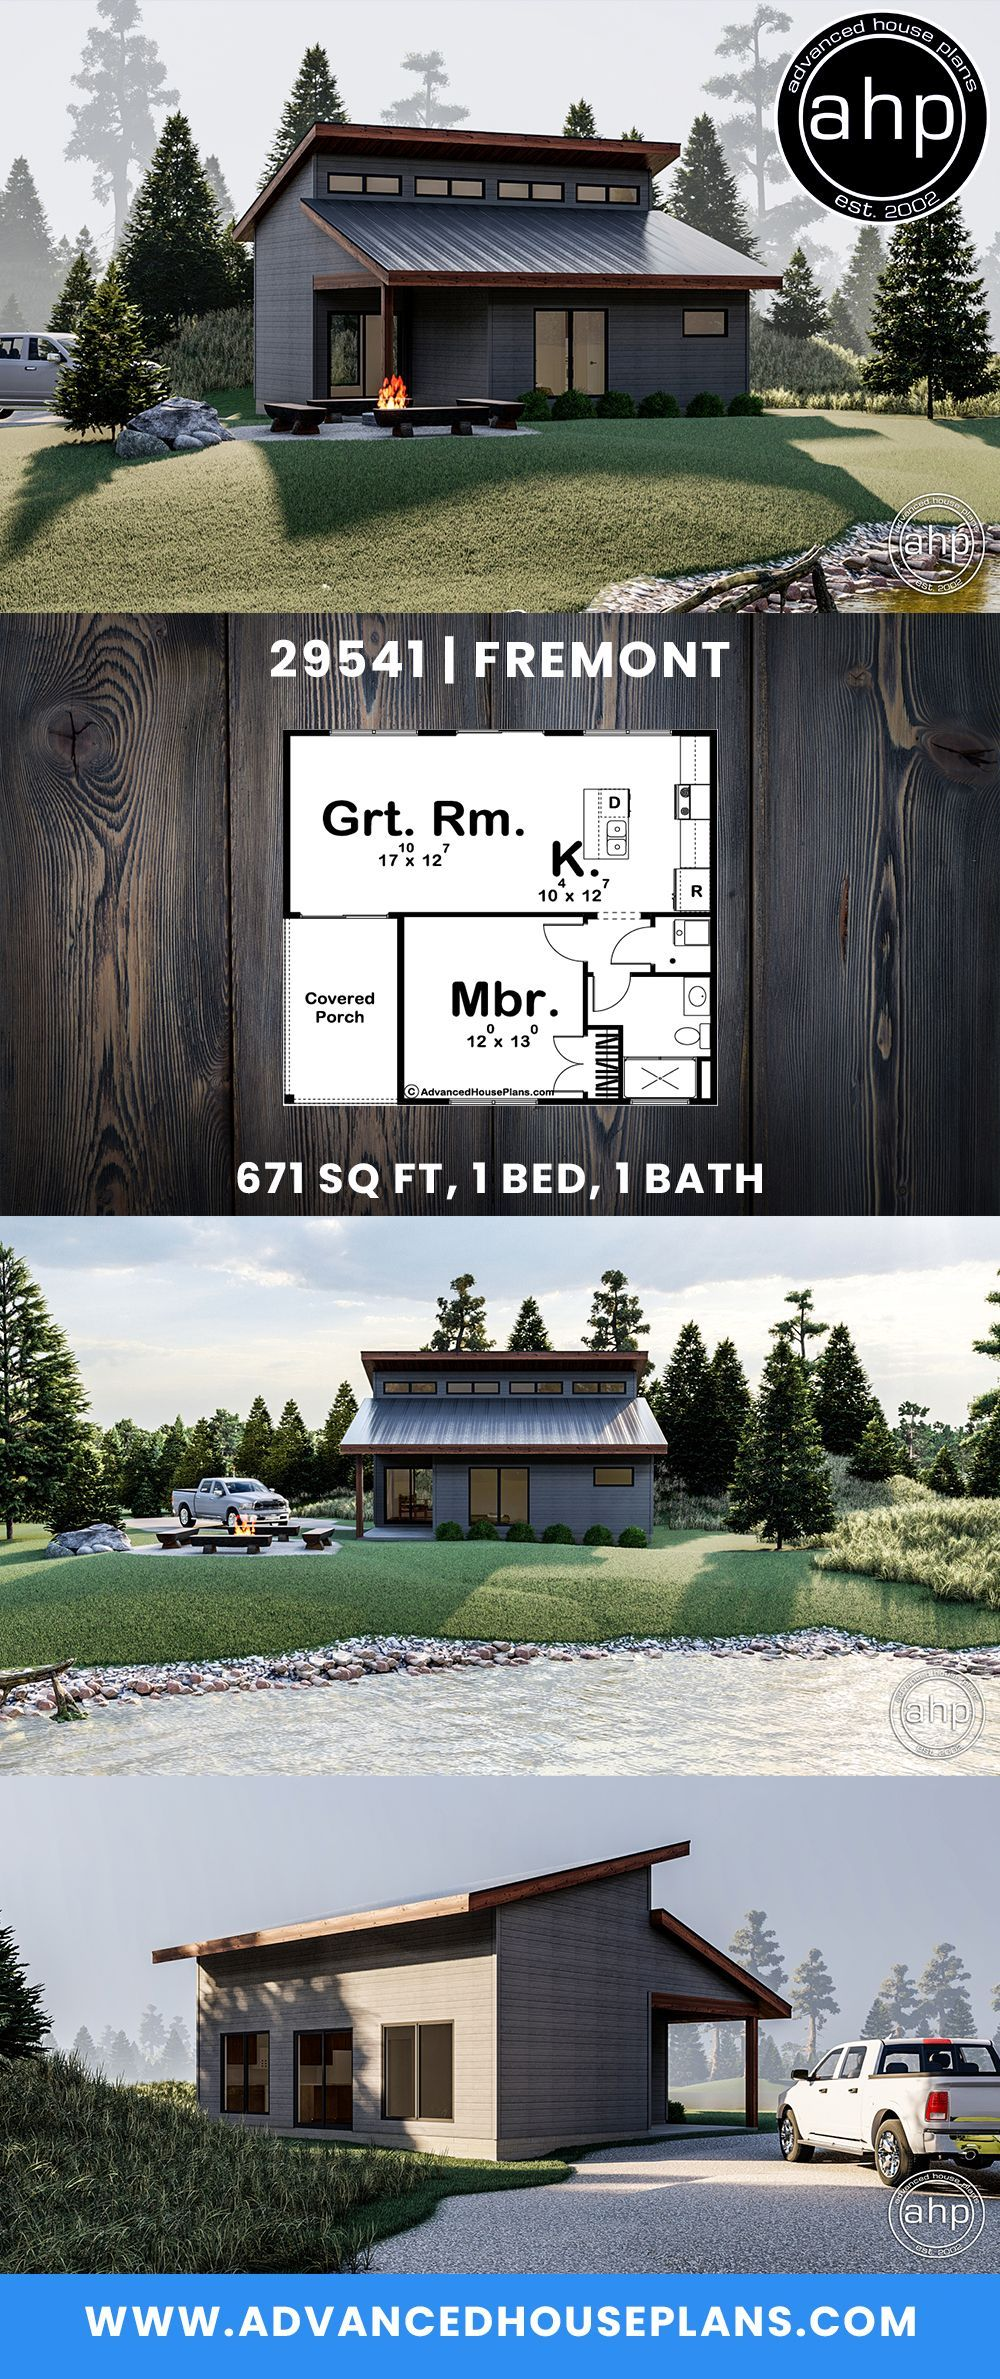 Modern Cabin Plan Modern Style Cabin Plan Fremont Cabindesign Cabinsweetcabin Home In 2020 Small House Floor Plans Modern Cabin Modern Small House Design